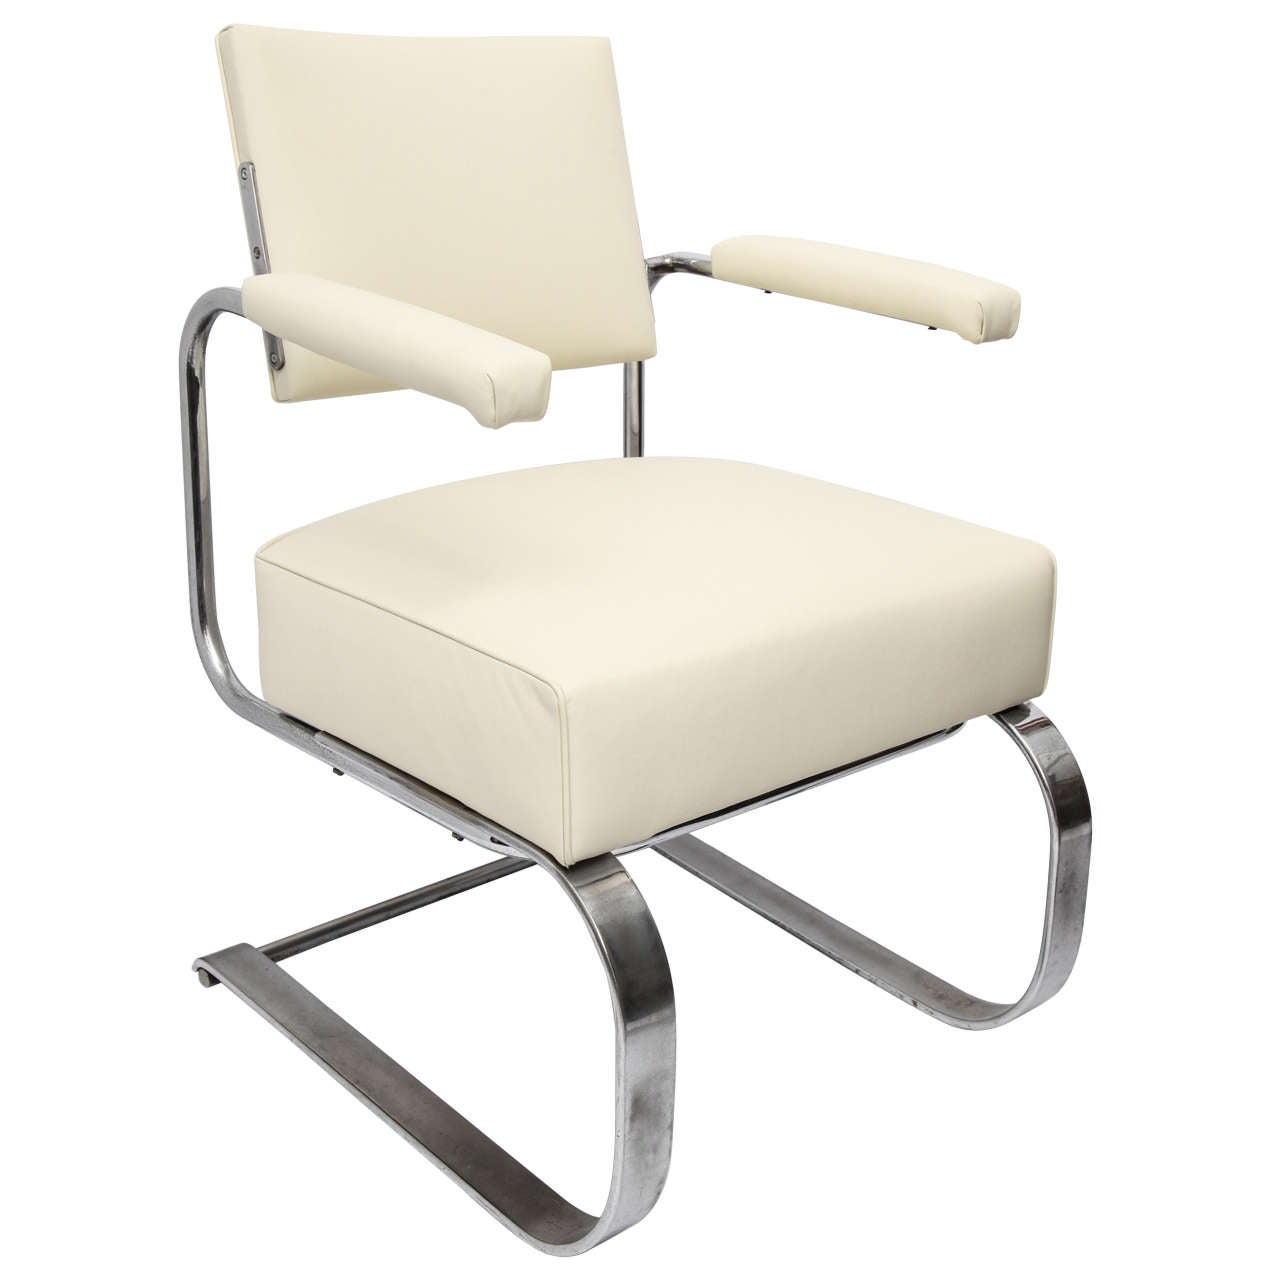 Gilbert Rohde Lounge Chair Art Deco Machine Age, 1930s For Sale